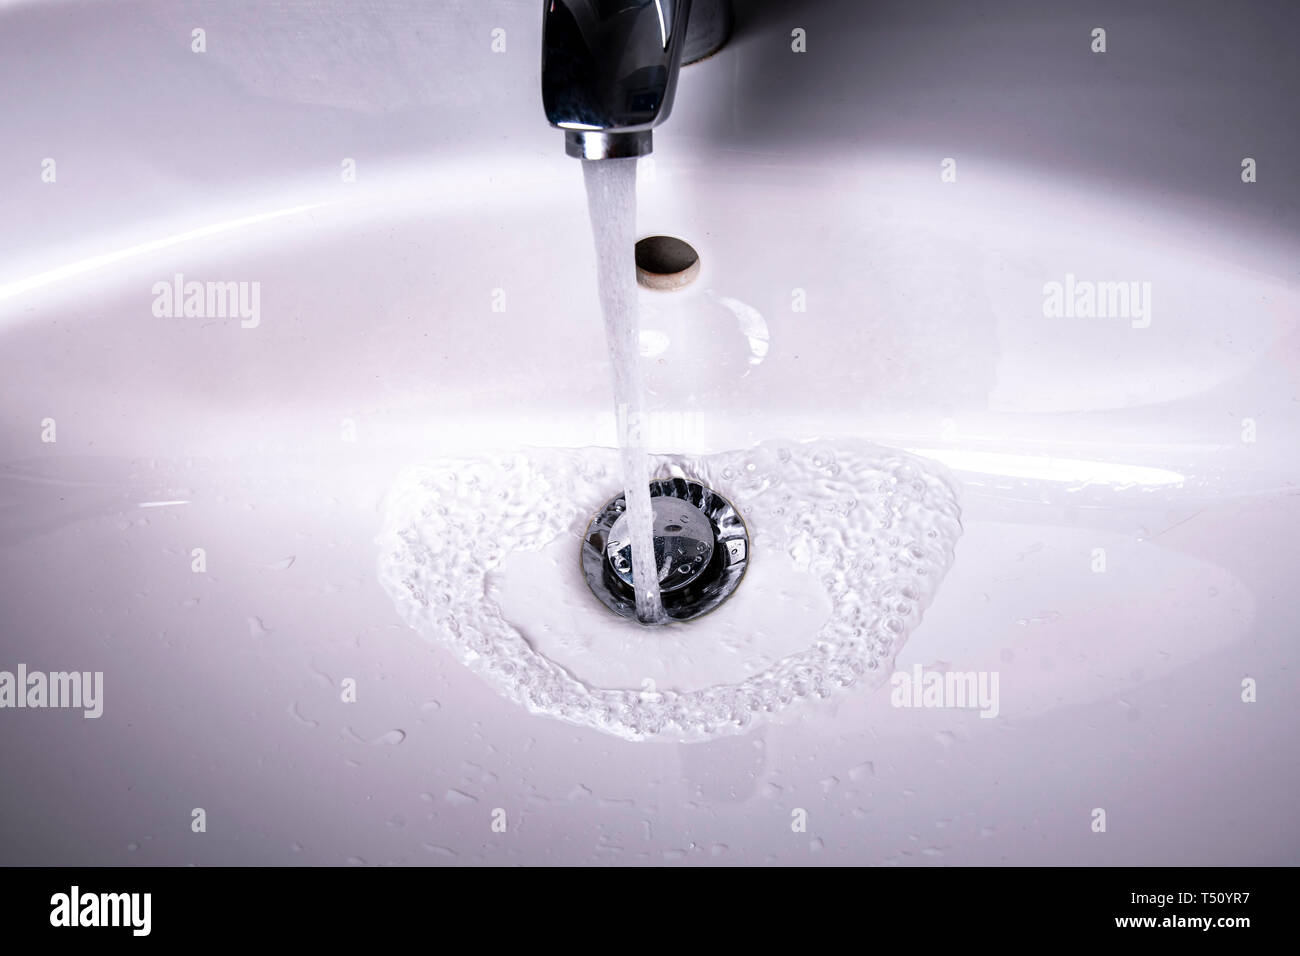 Water flows into the sink with drain plug Stock Photo